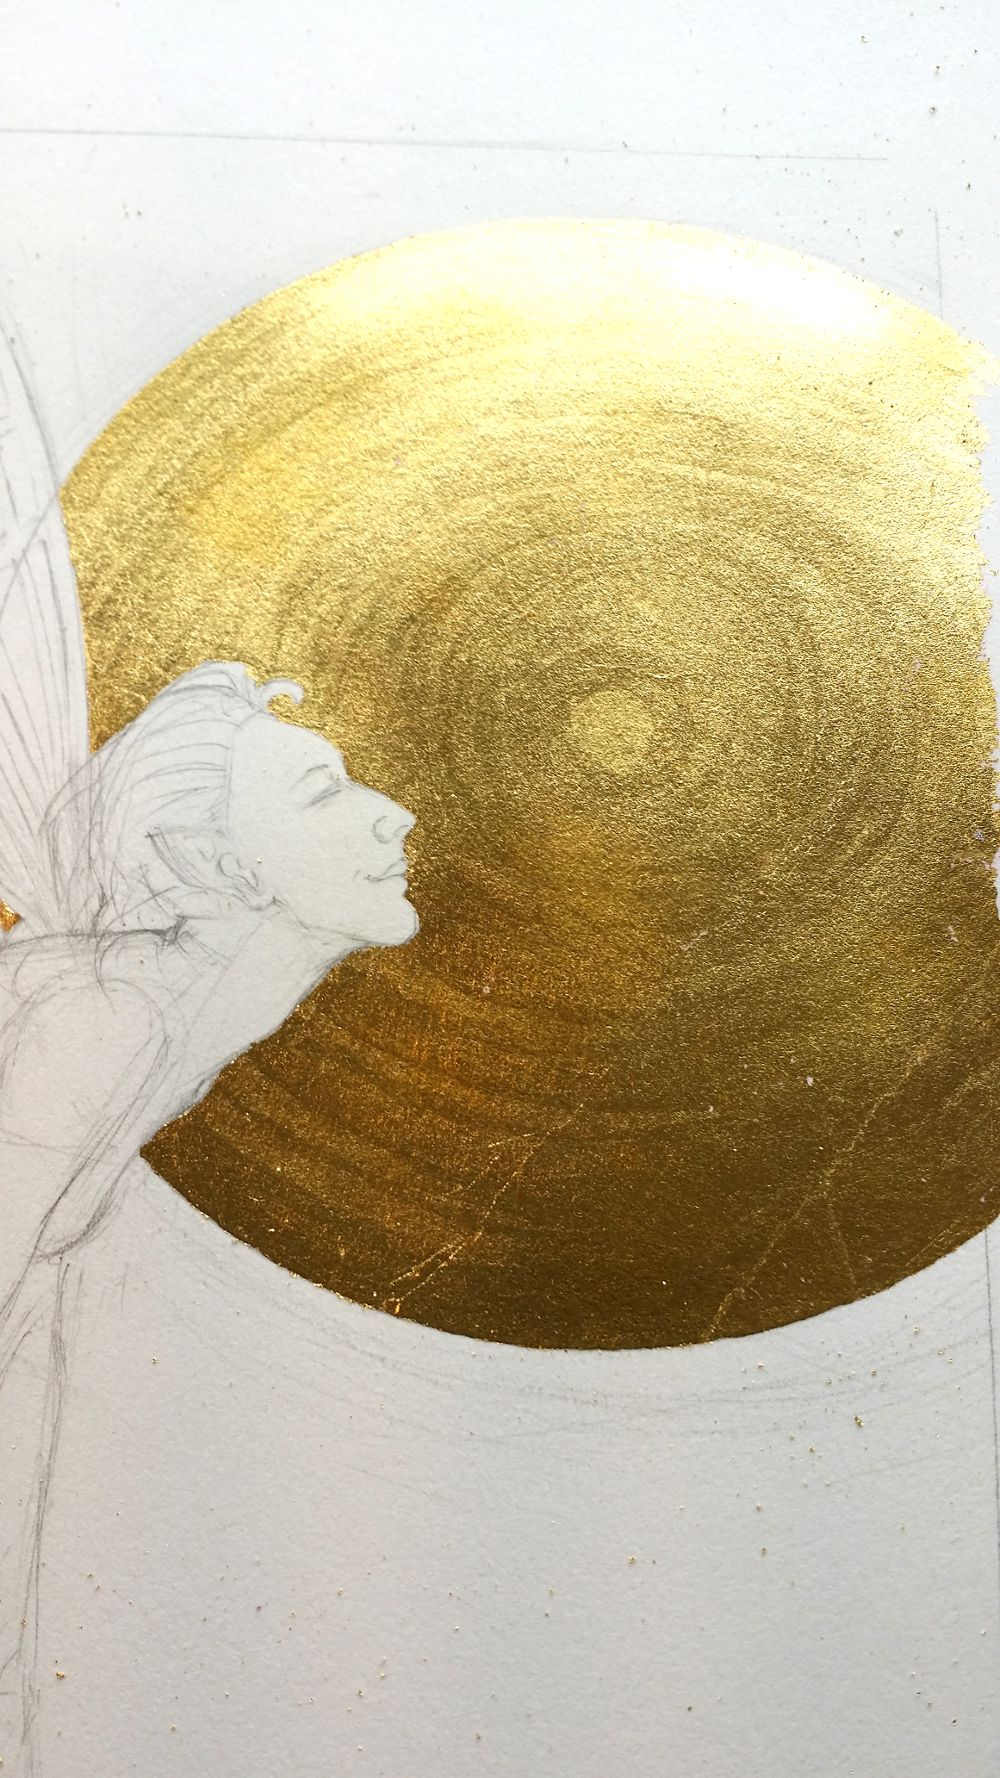 finished gilding on the paper